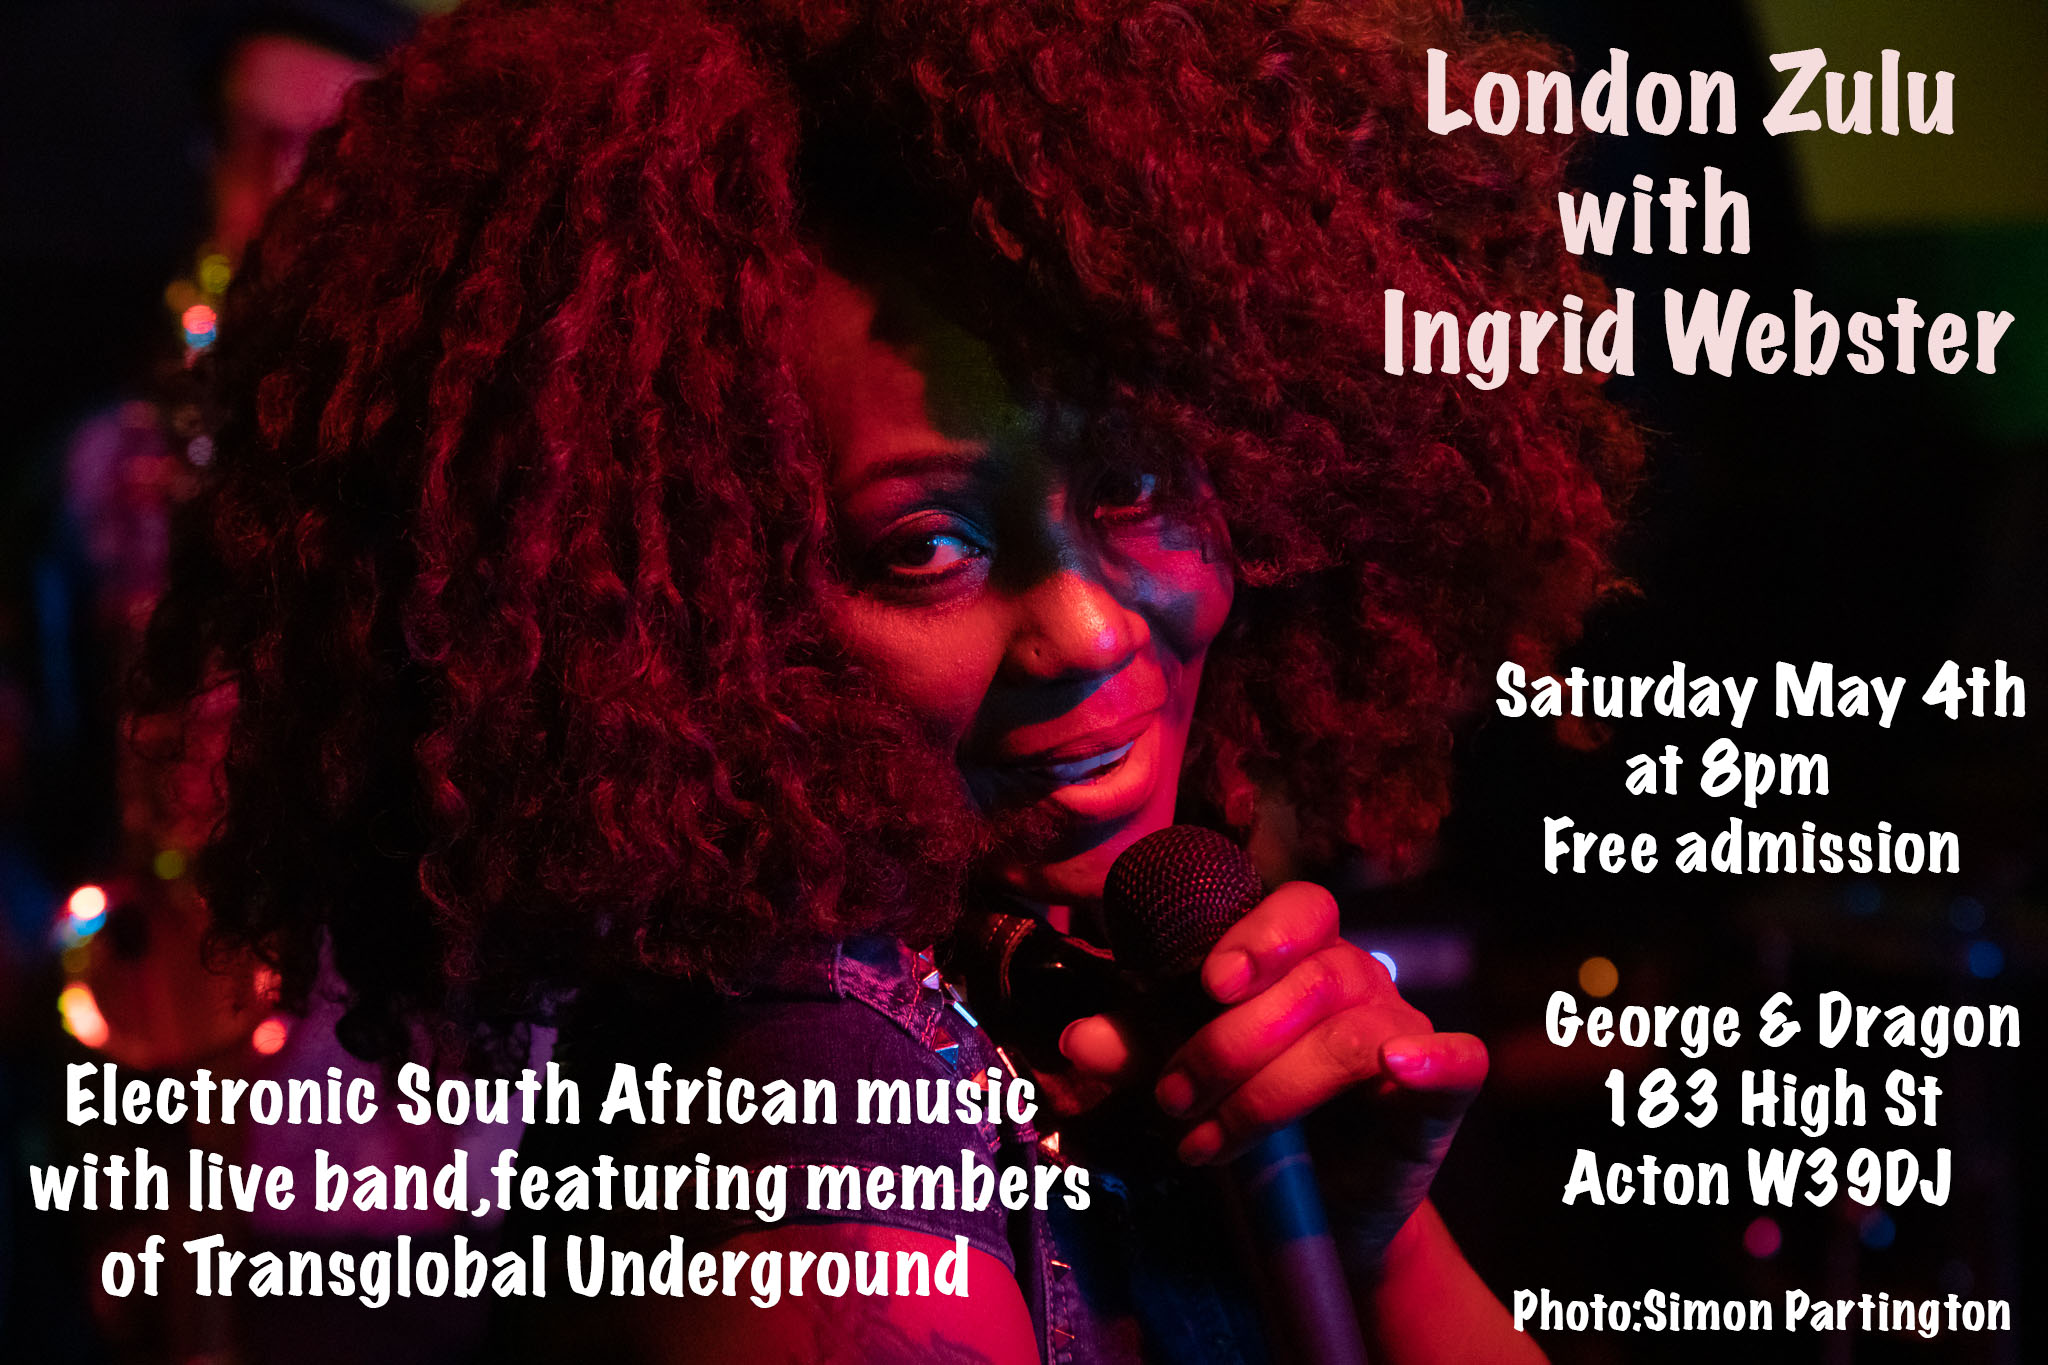 London Zulu feat. Ingrid Webster and members of Transglobal Underground